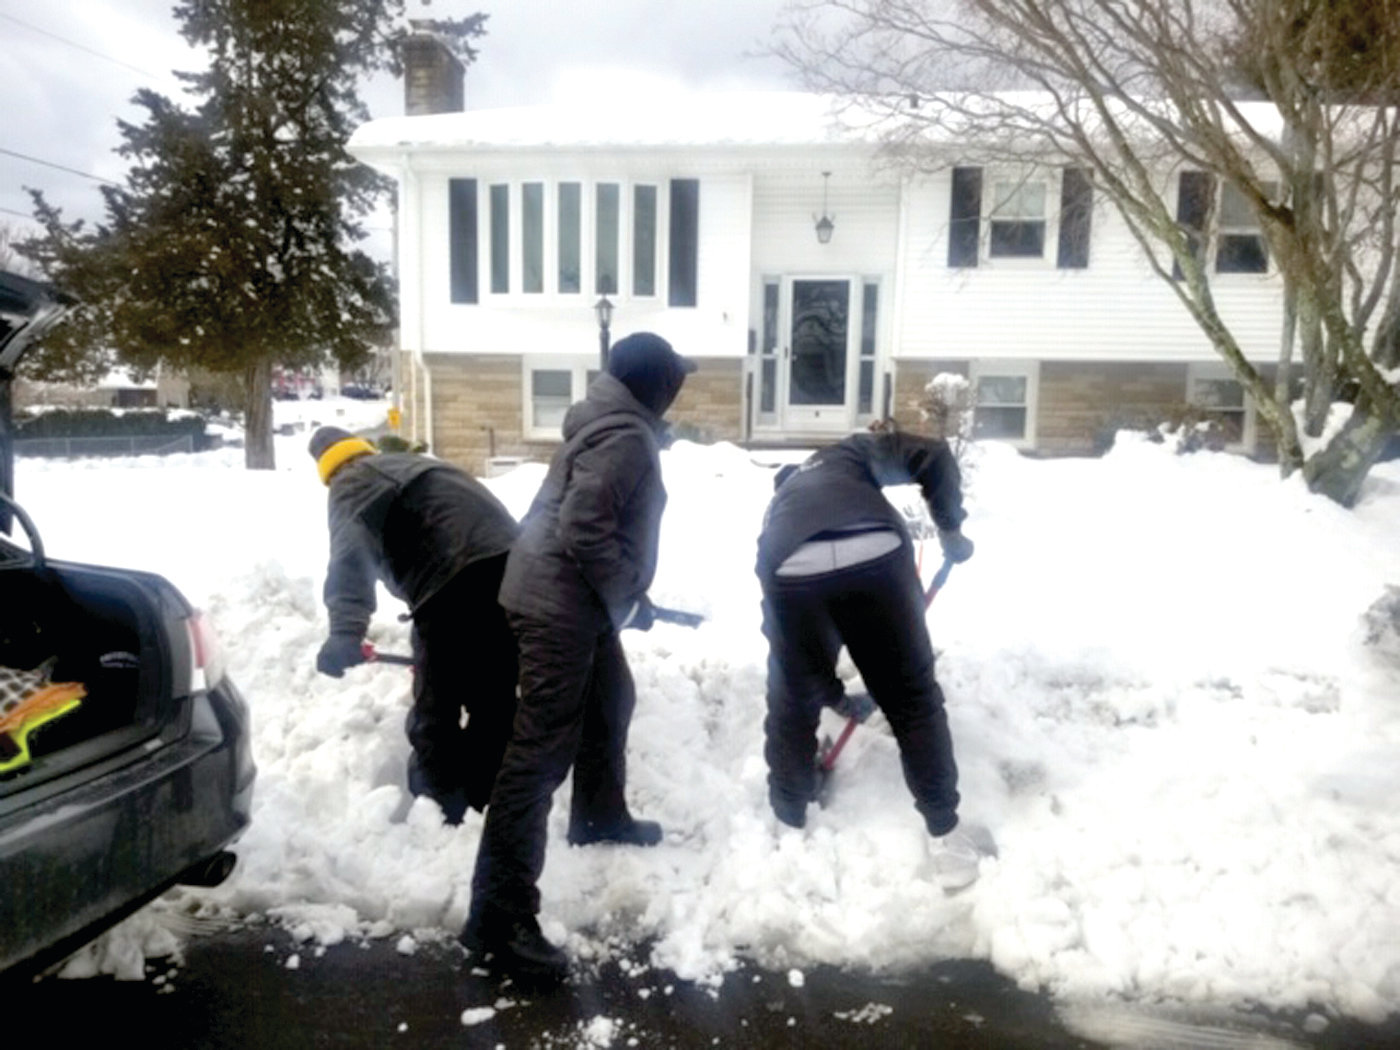 SPECIAL SCENE: The Explorers are hard at work beginning to clear snow from the sidewalk at a senior citizens home.